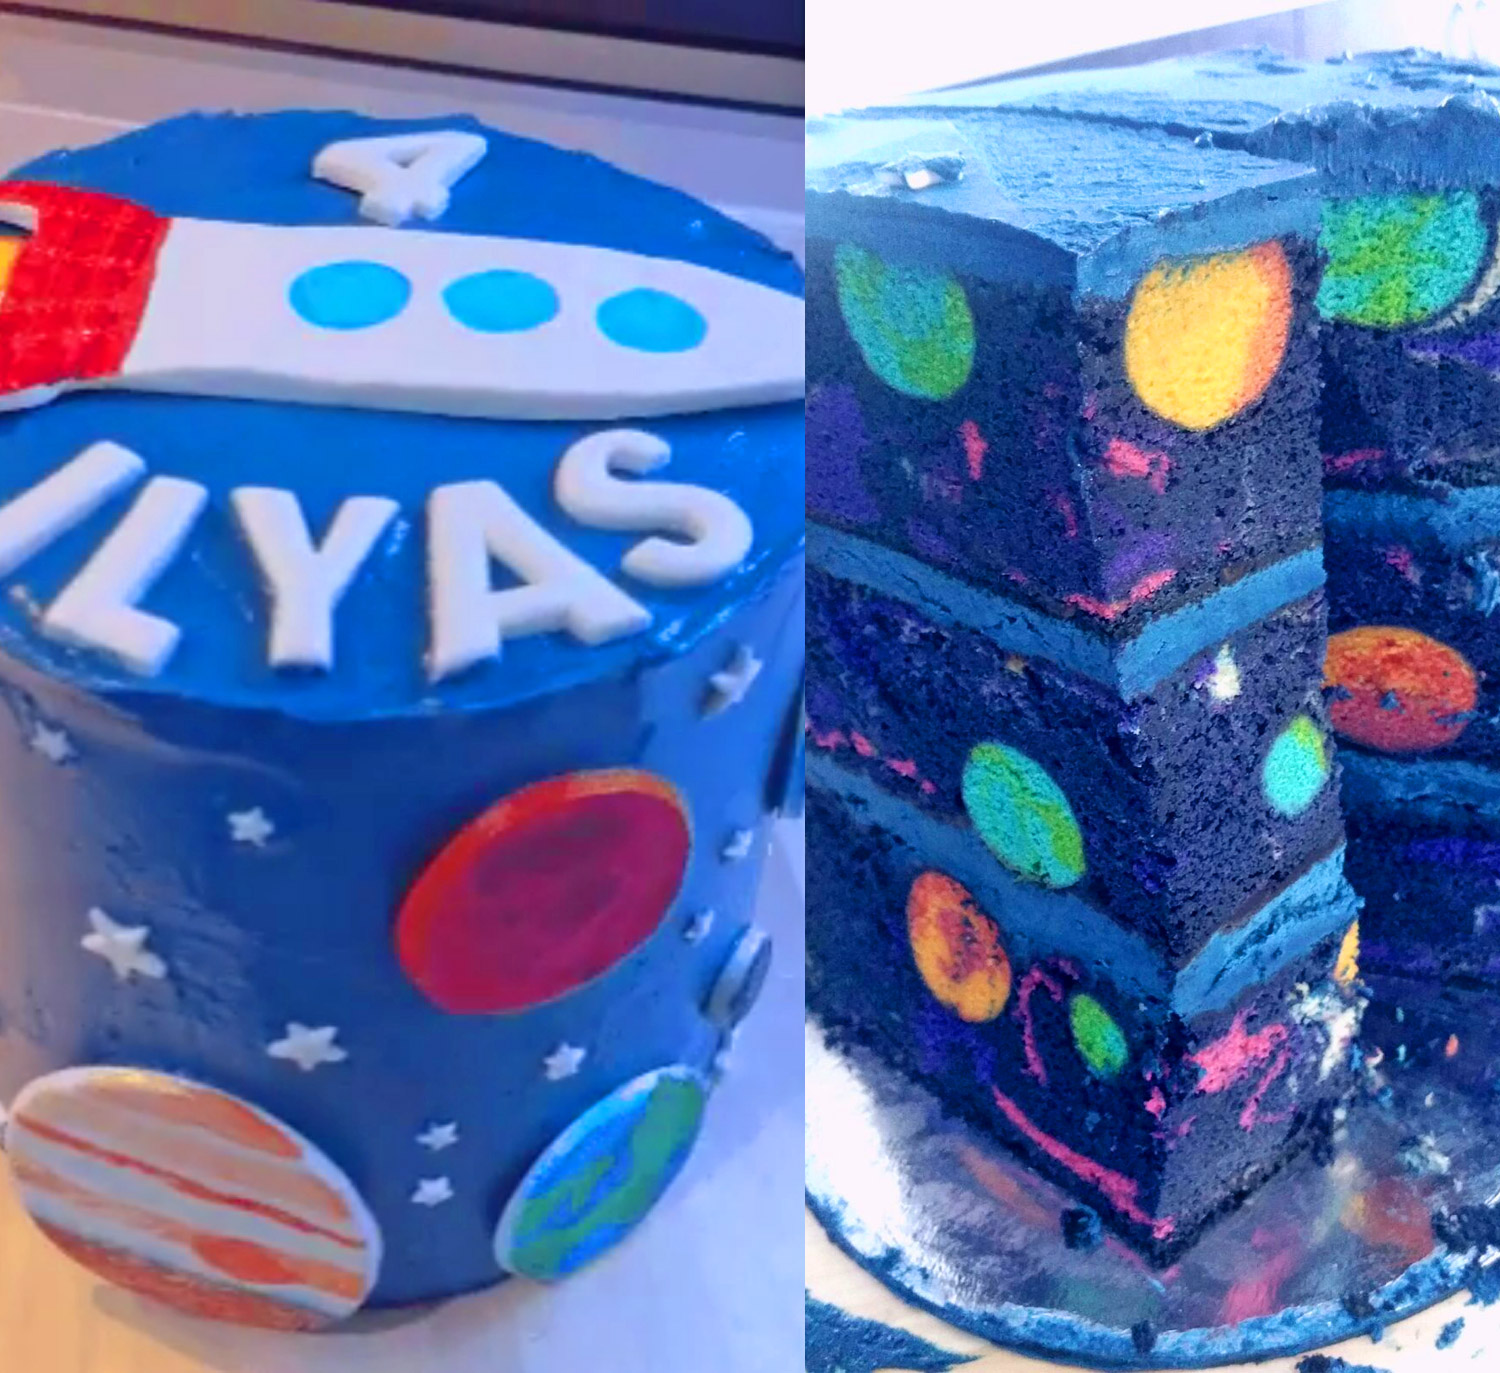 Stupendous This Space Themed Birthday Cake Reveals An Entire Galaxy Once Funny Birthday Cards Online Inifofree Goldxyz